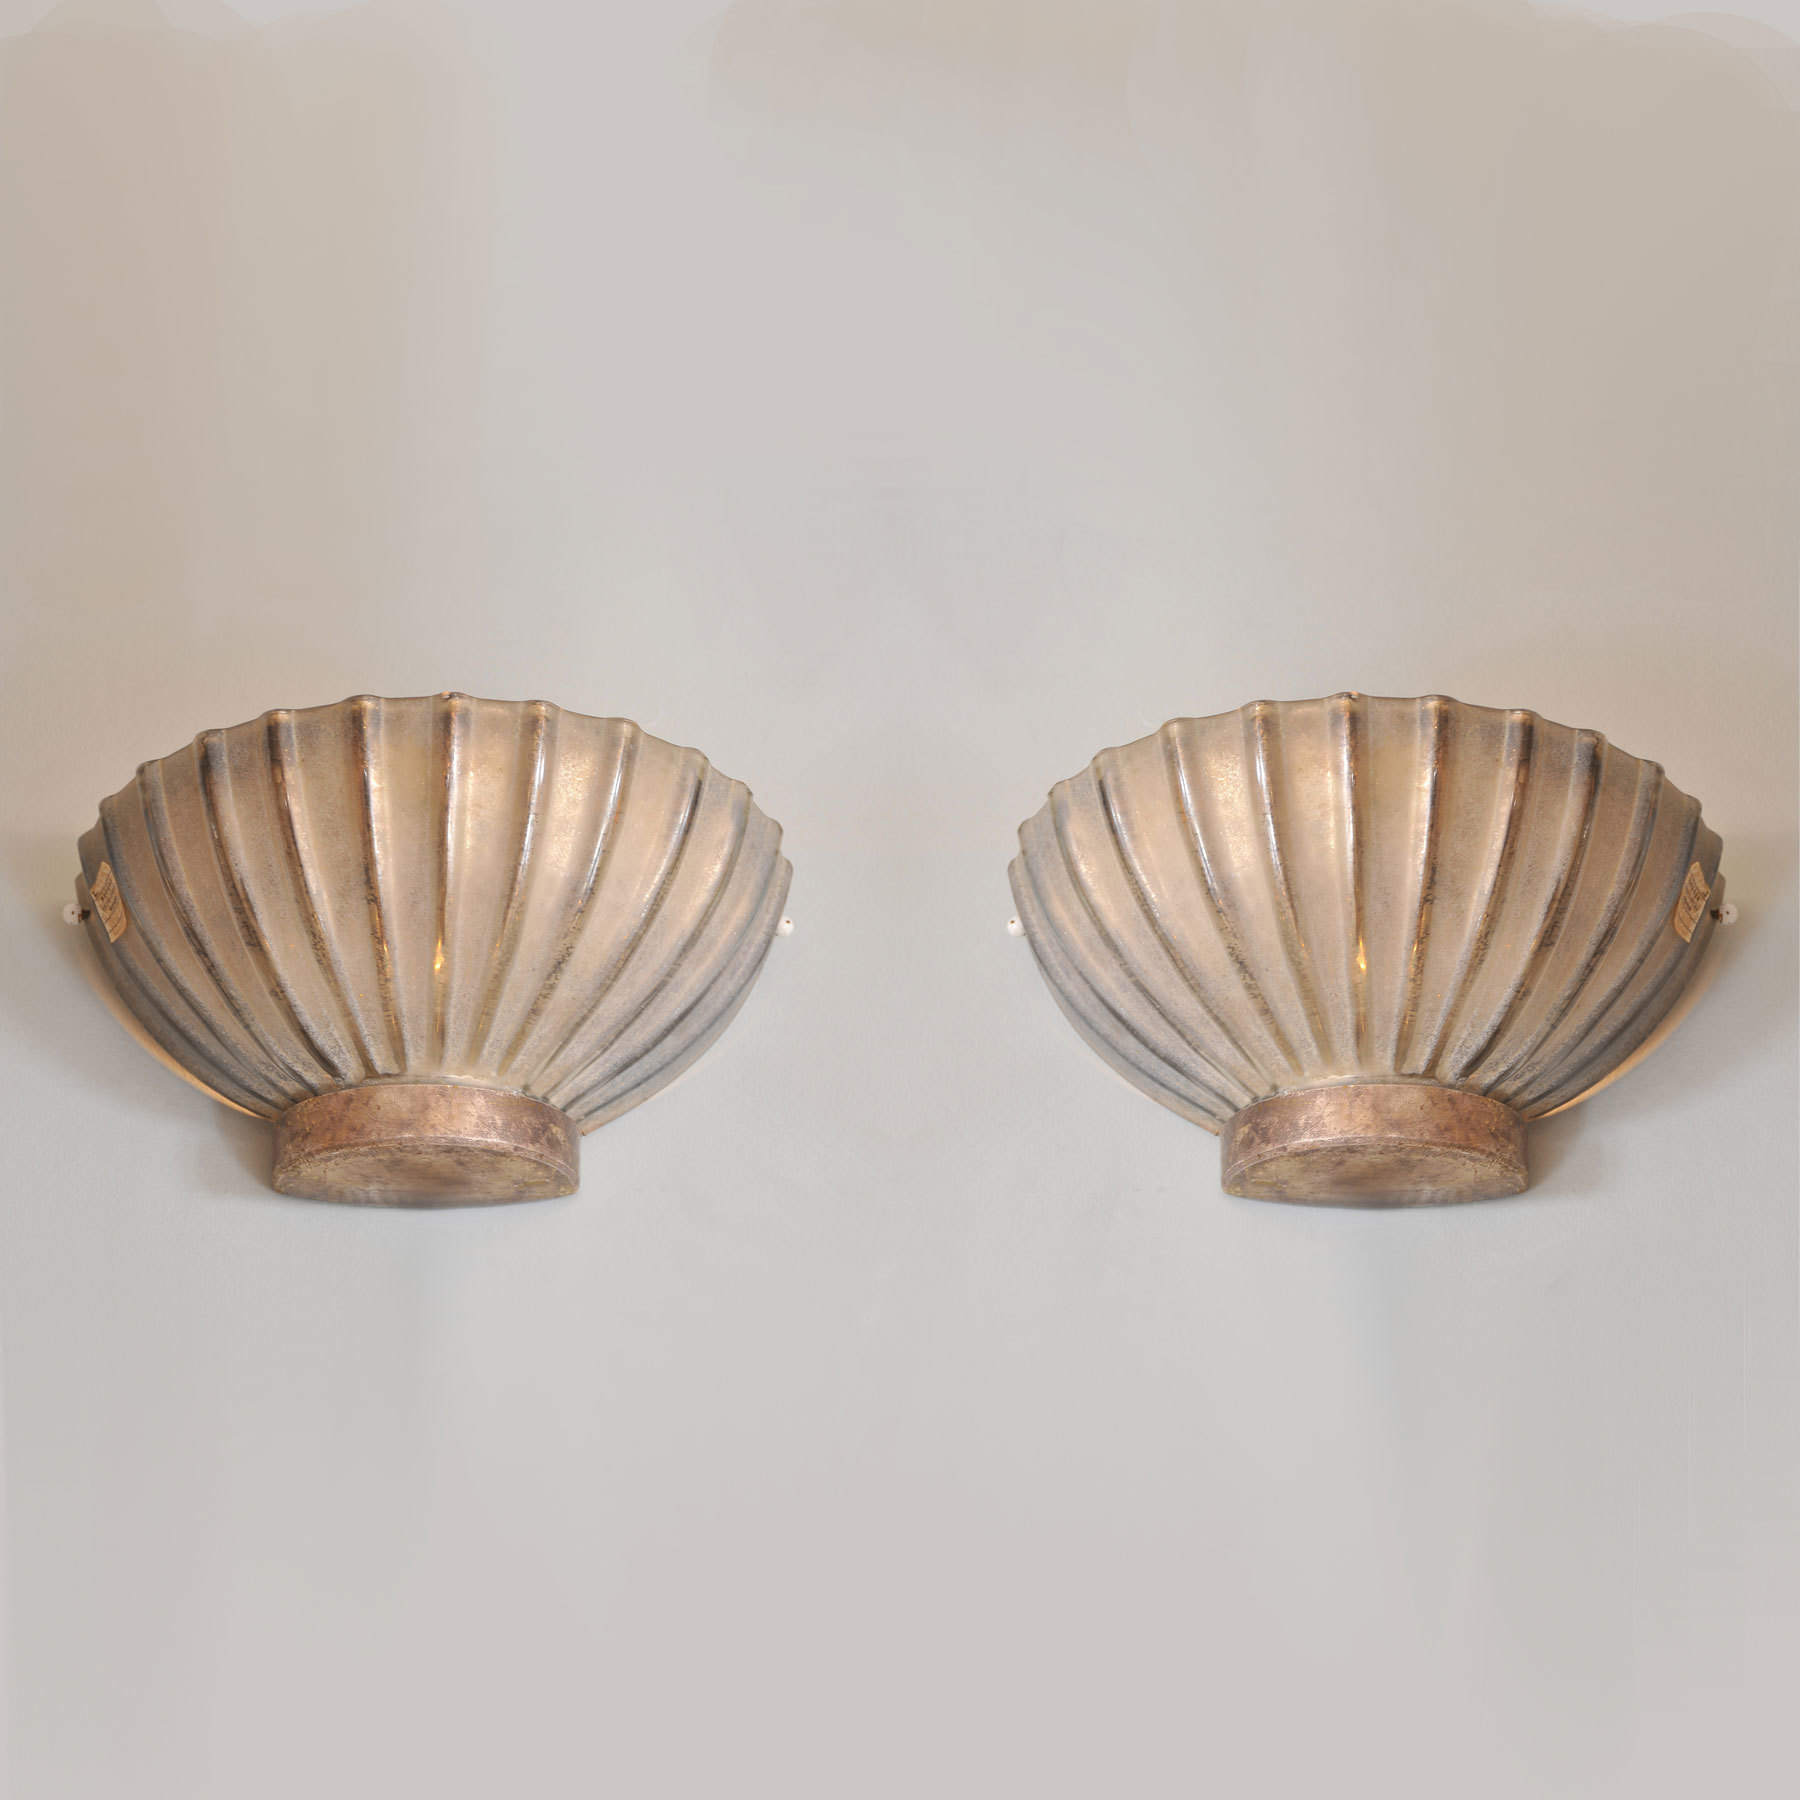 Italian 1960s scallop shell wall lights by seguso vetri valerie wade italian 1960s scallop shell wall lights by seguso vetri darte mozeypictures Choice Image